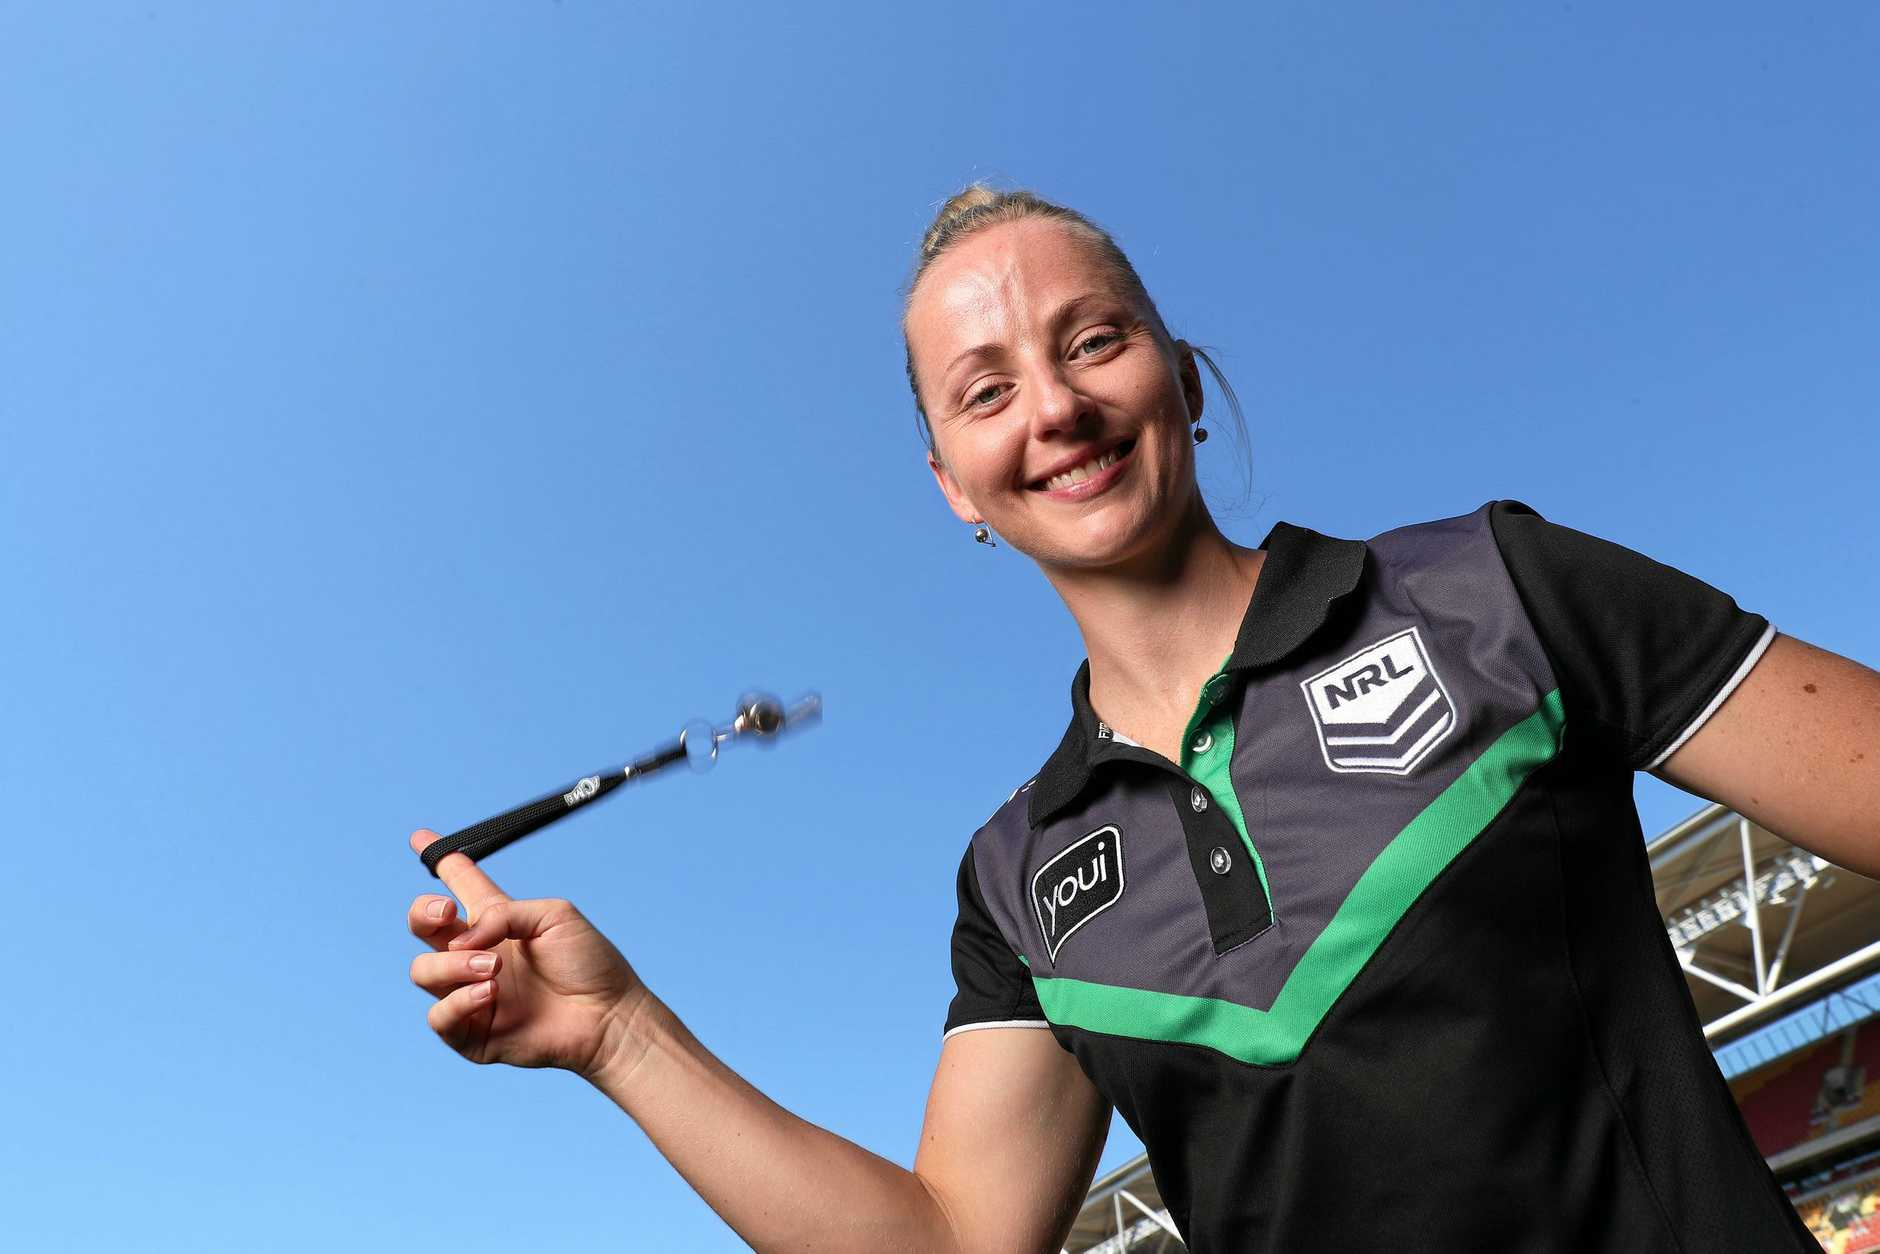 NRL ref Belinda Sleeman will be in charge of her first mens NRL game this weekend, Suncorp Stadium, Milton. Photographer: Liam Kidston.